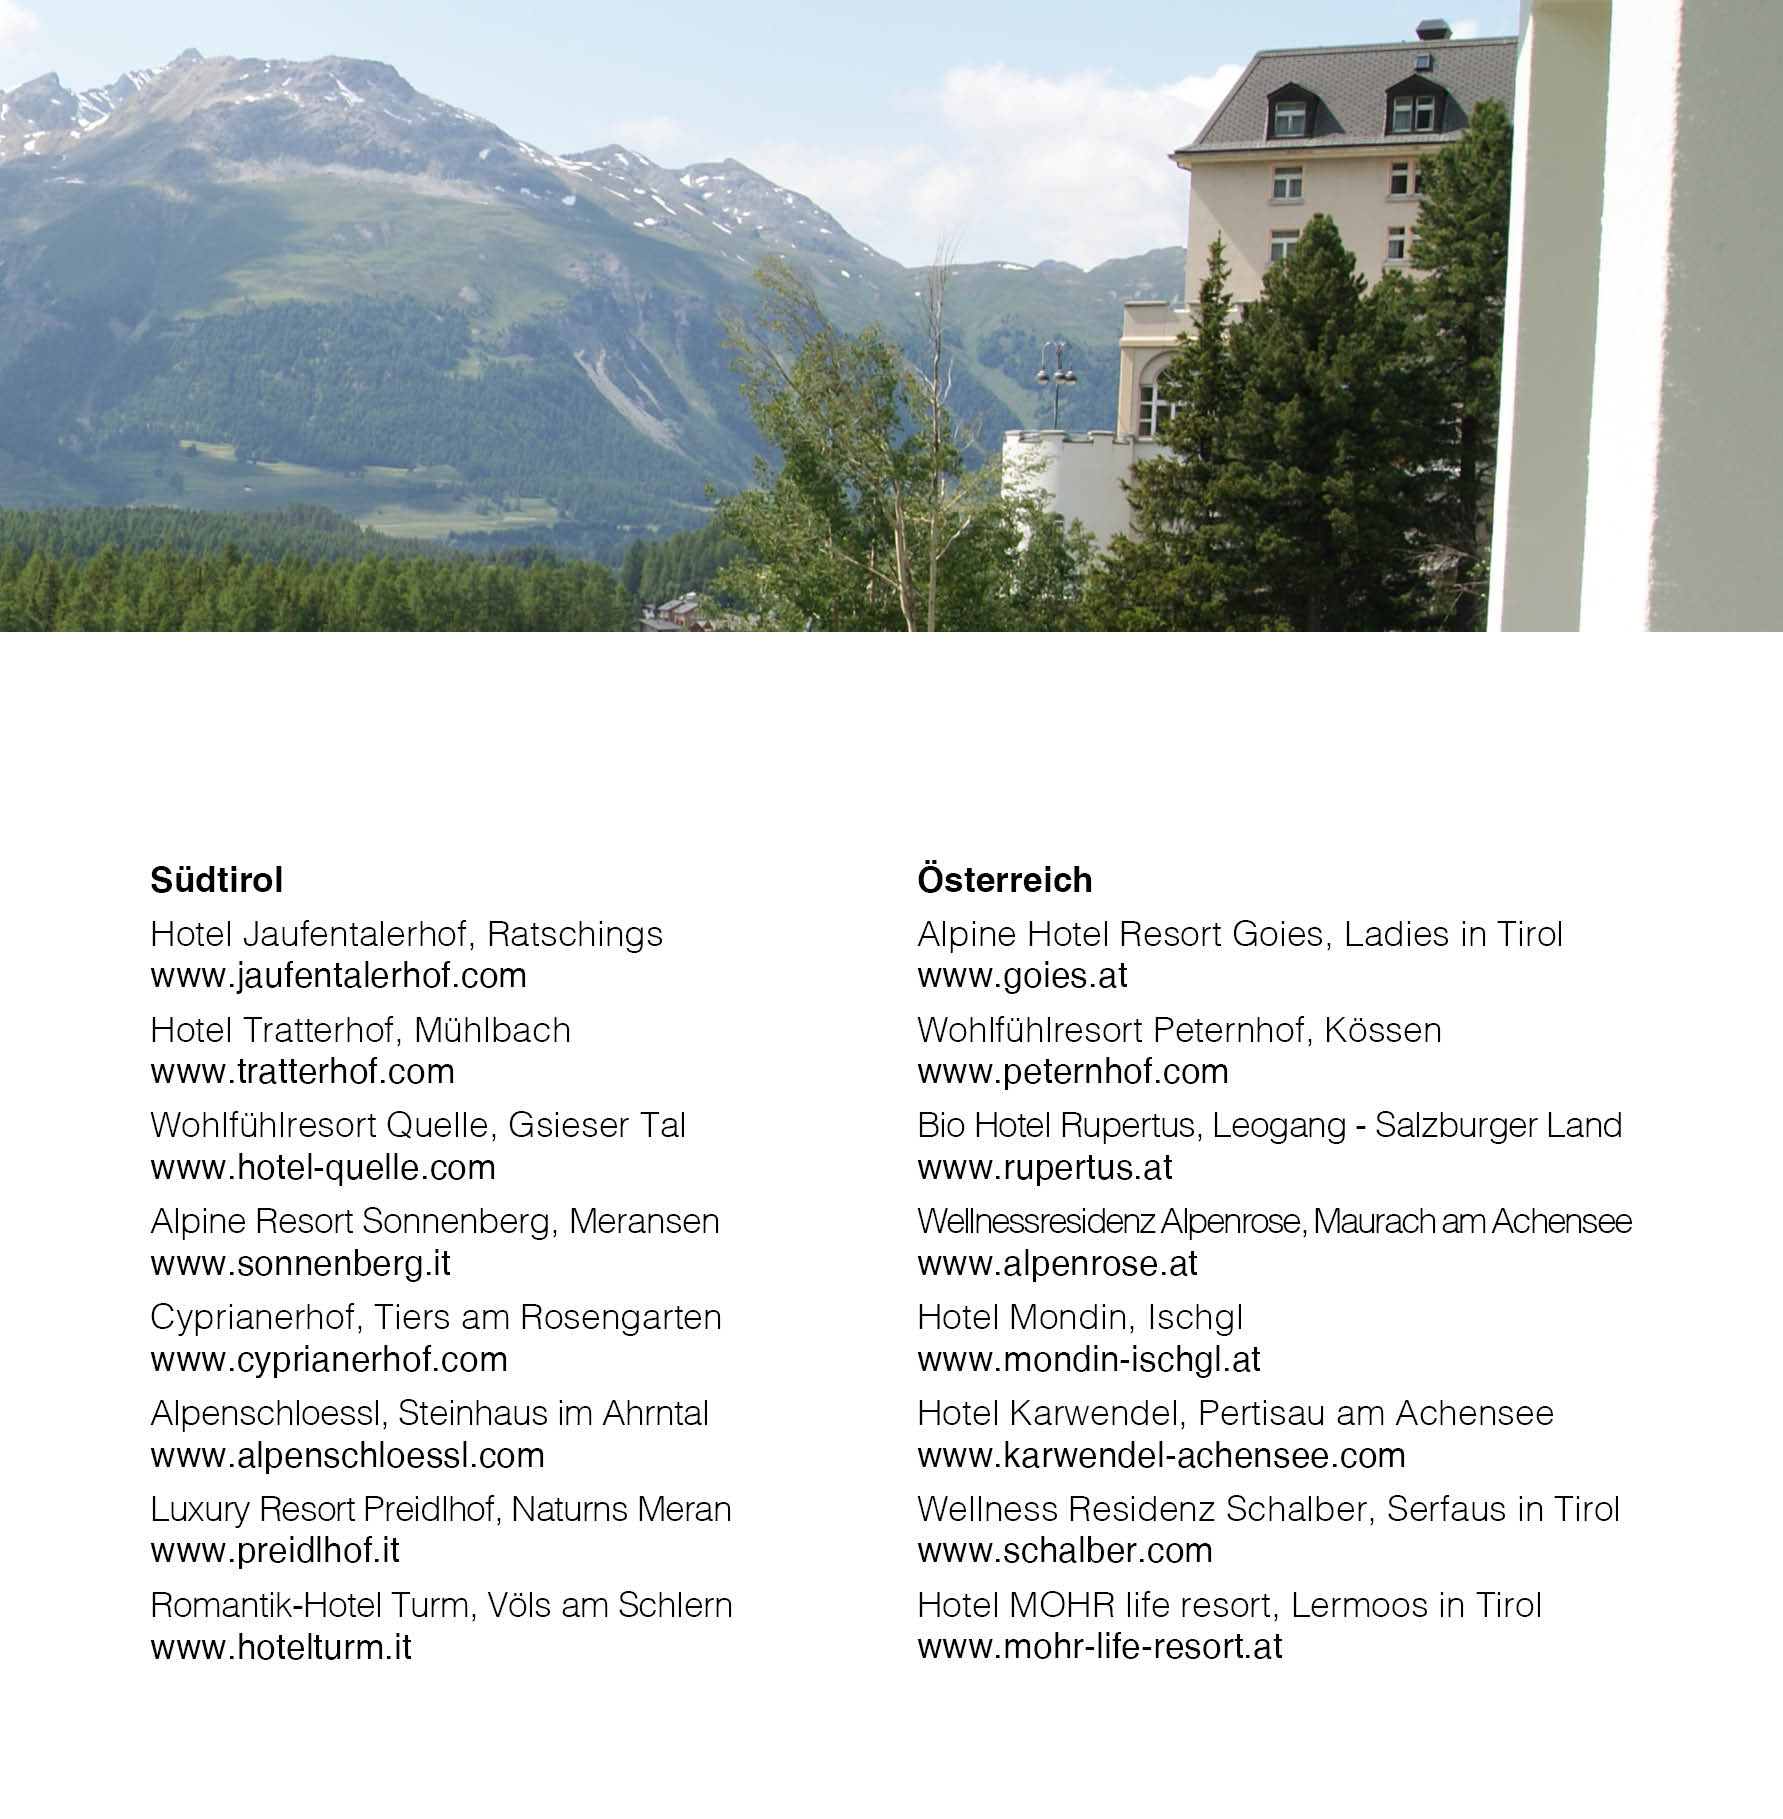 http://www.berge-exclusiv.de/wp-content/uploads/Pocket-Guide-18041615.jpg